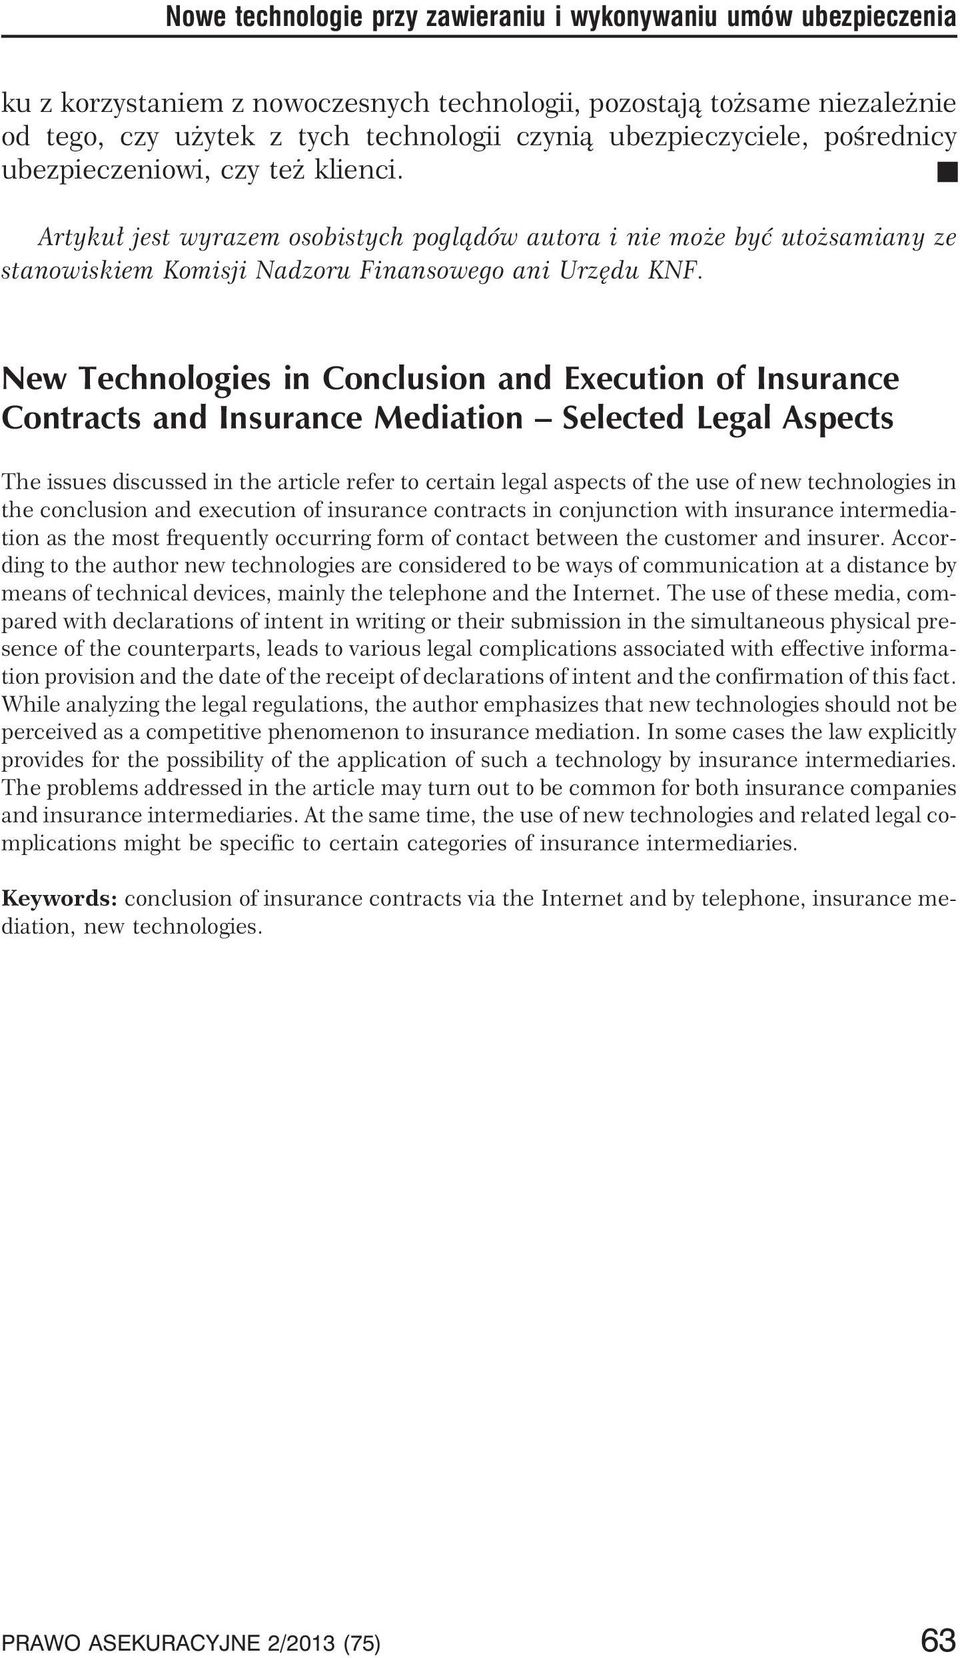 New Technologies in Conclusion and Execution of Insurance Contracts and Insurance Mediation Selected Legal Aspects The issues discussed in the article refer to certain legal aspects of the use of new